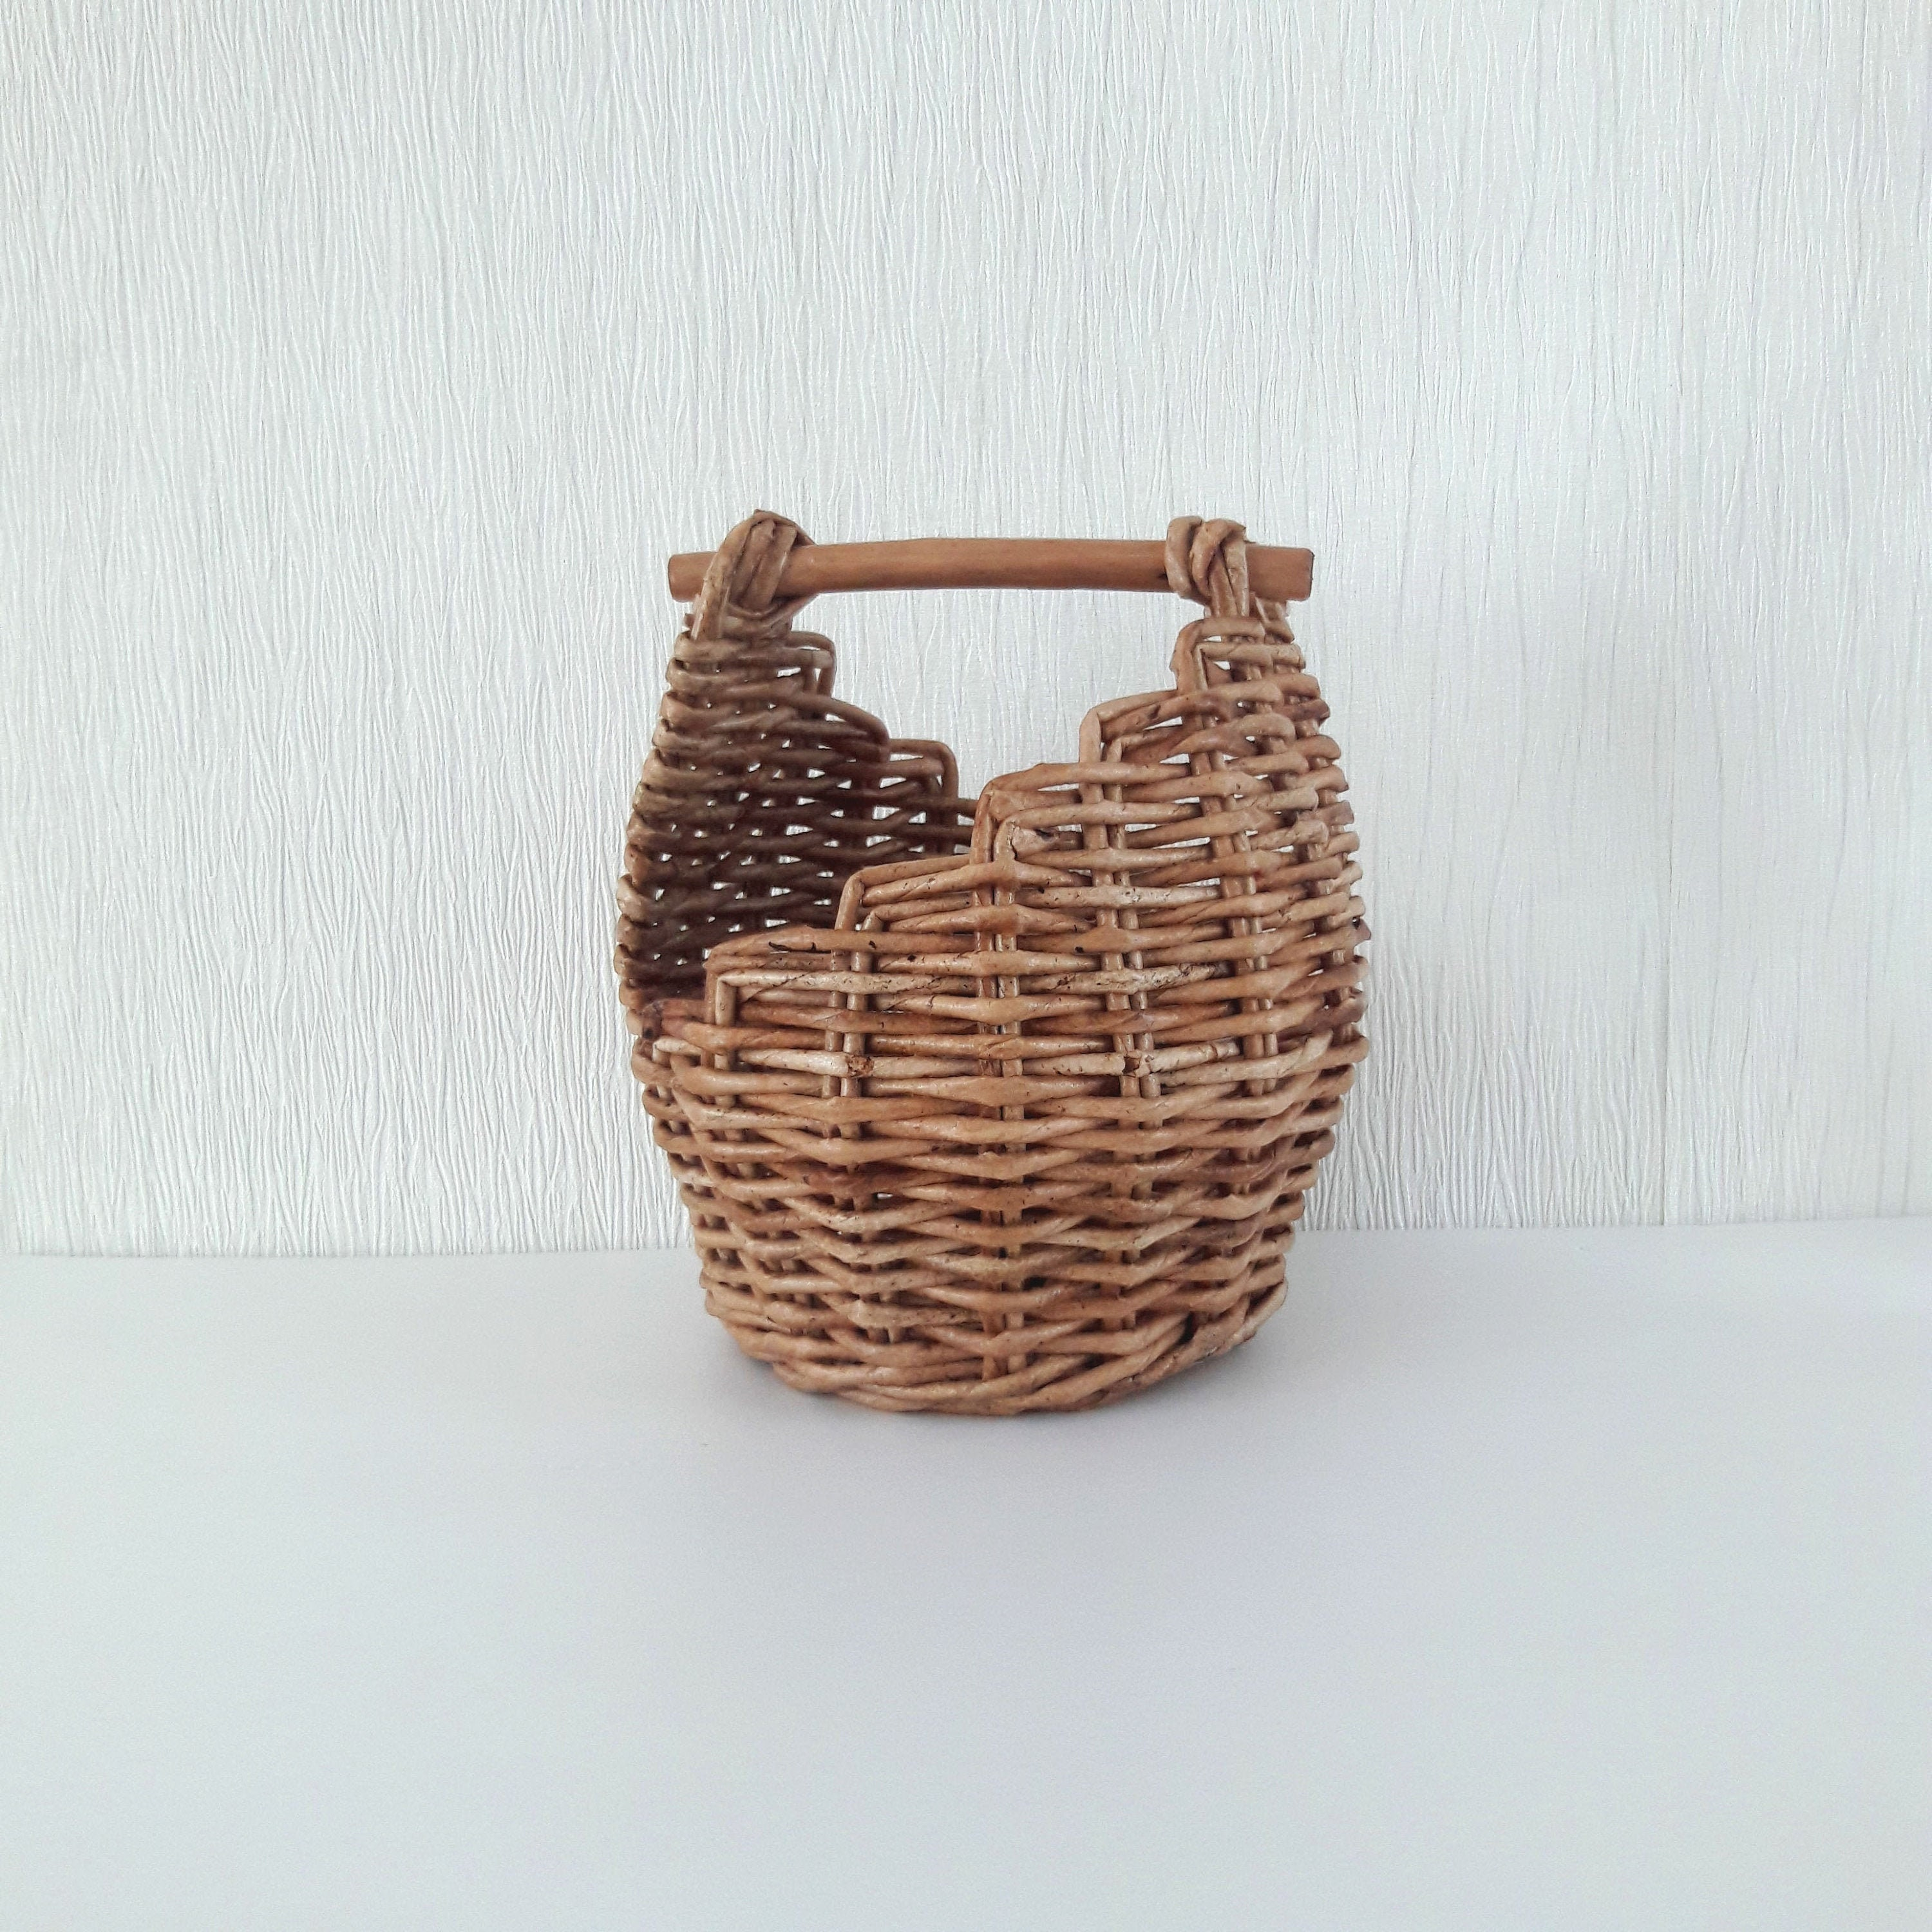 Smal Wicker Basket With Wooden Handle Rustic Table Decor Etsy